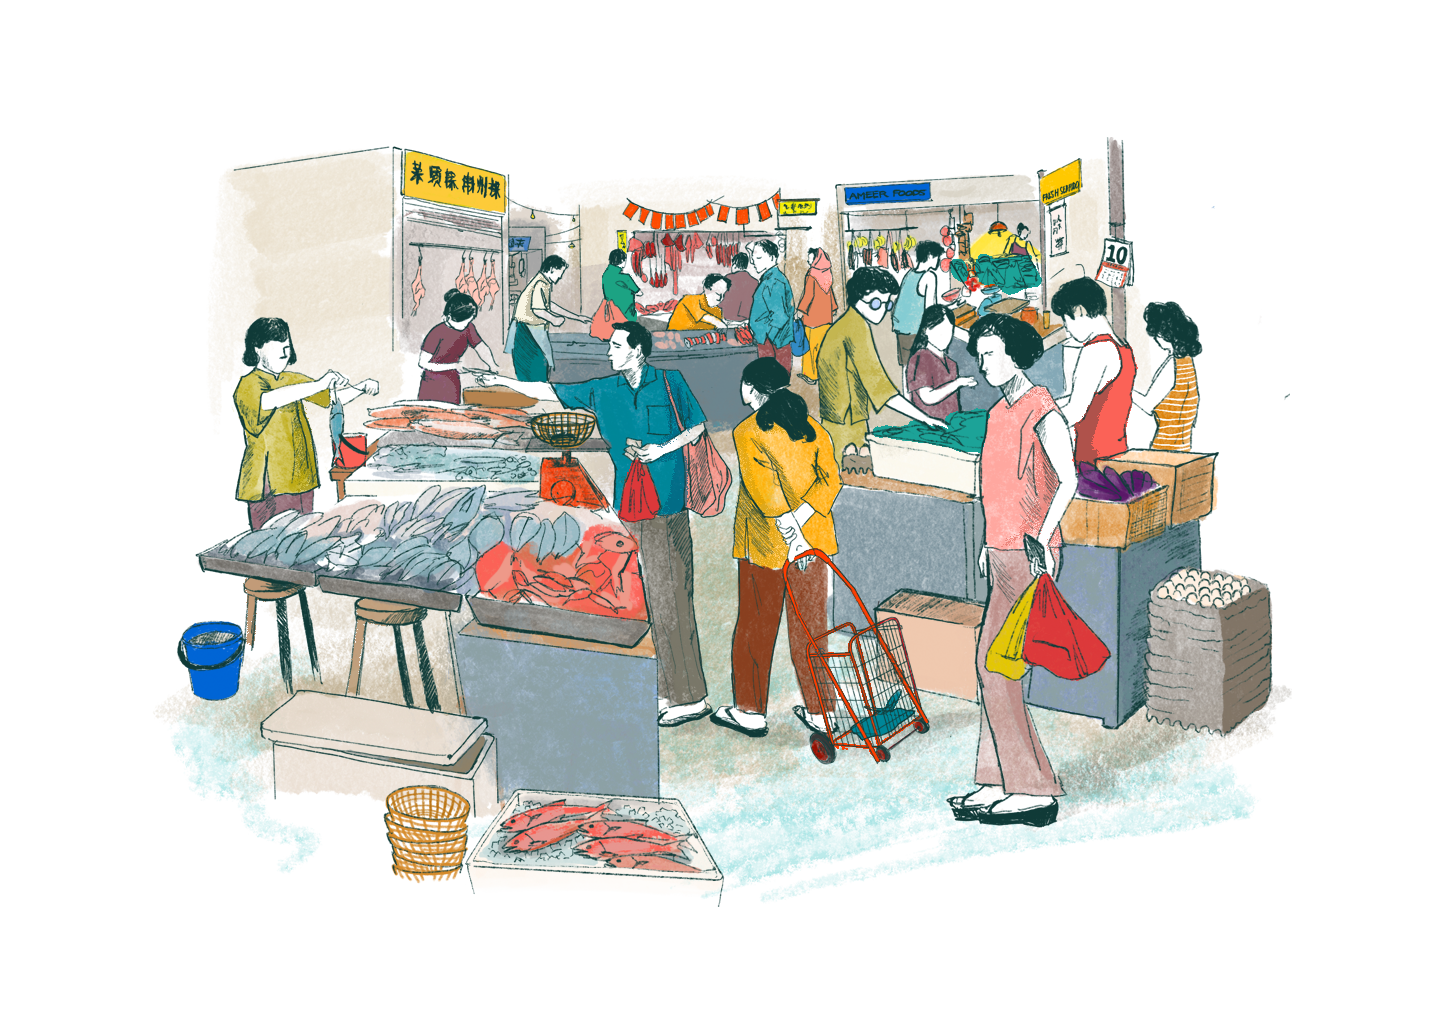 illustration of a 1970s pasar